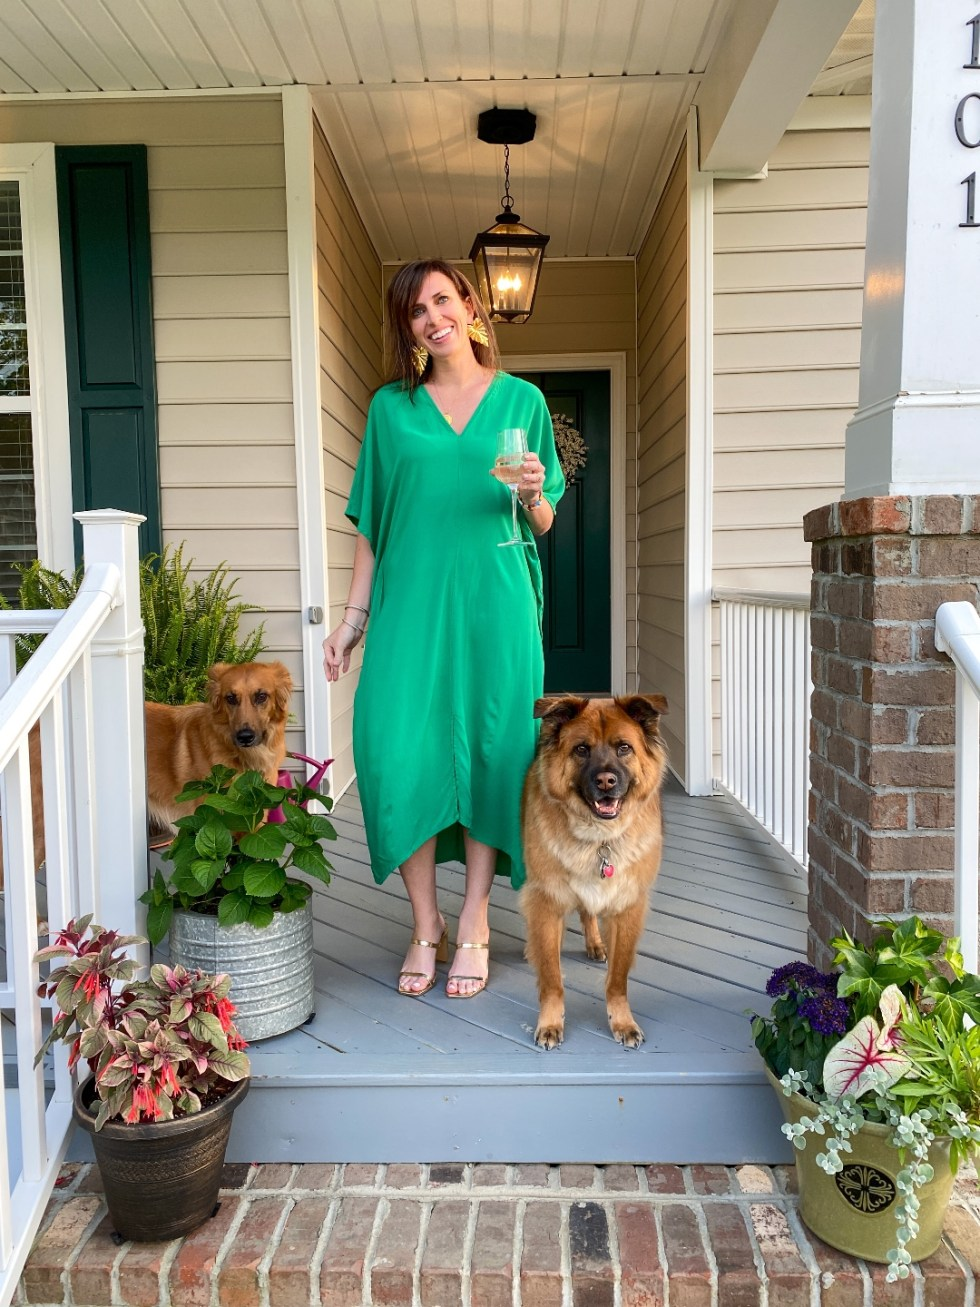 Style Diary: What I've Been Wearing this Spring - I'm Fixin' To - @imfixintoblog | Spring Essentials by popular NC fashion blog, I'm Fixin' To: image of a woman standing on her front porch with her two dogs and holding a glass of white wine while wearing. green dress, gold strap sandals, and gold statement earrings.